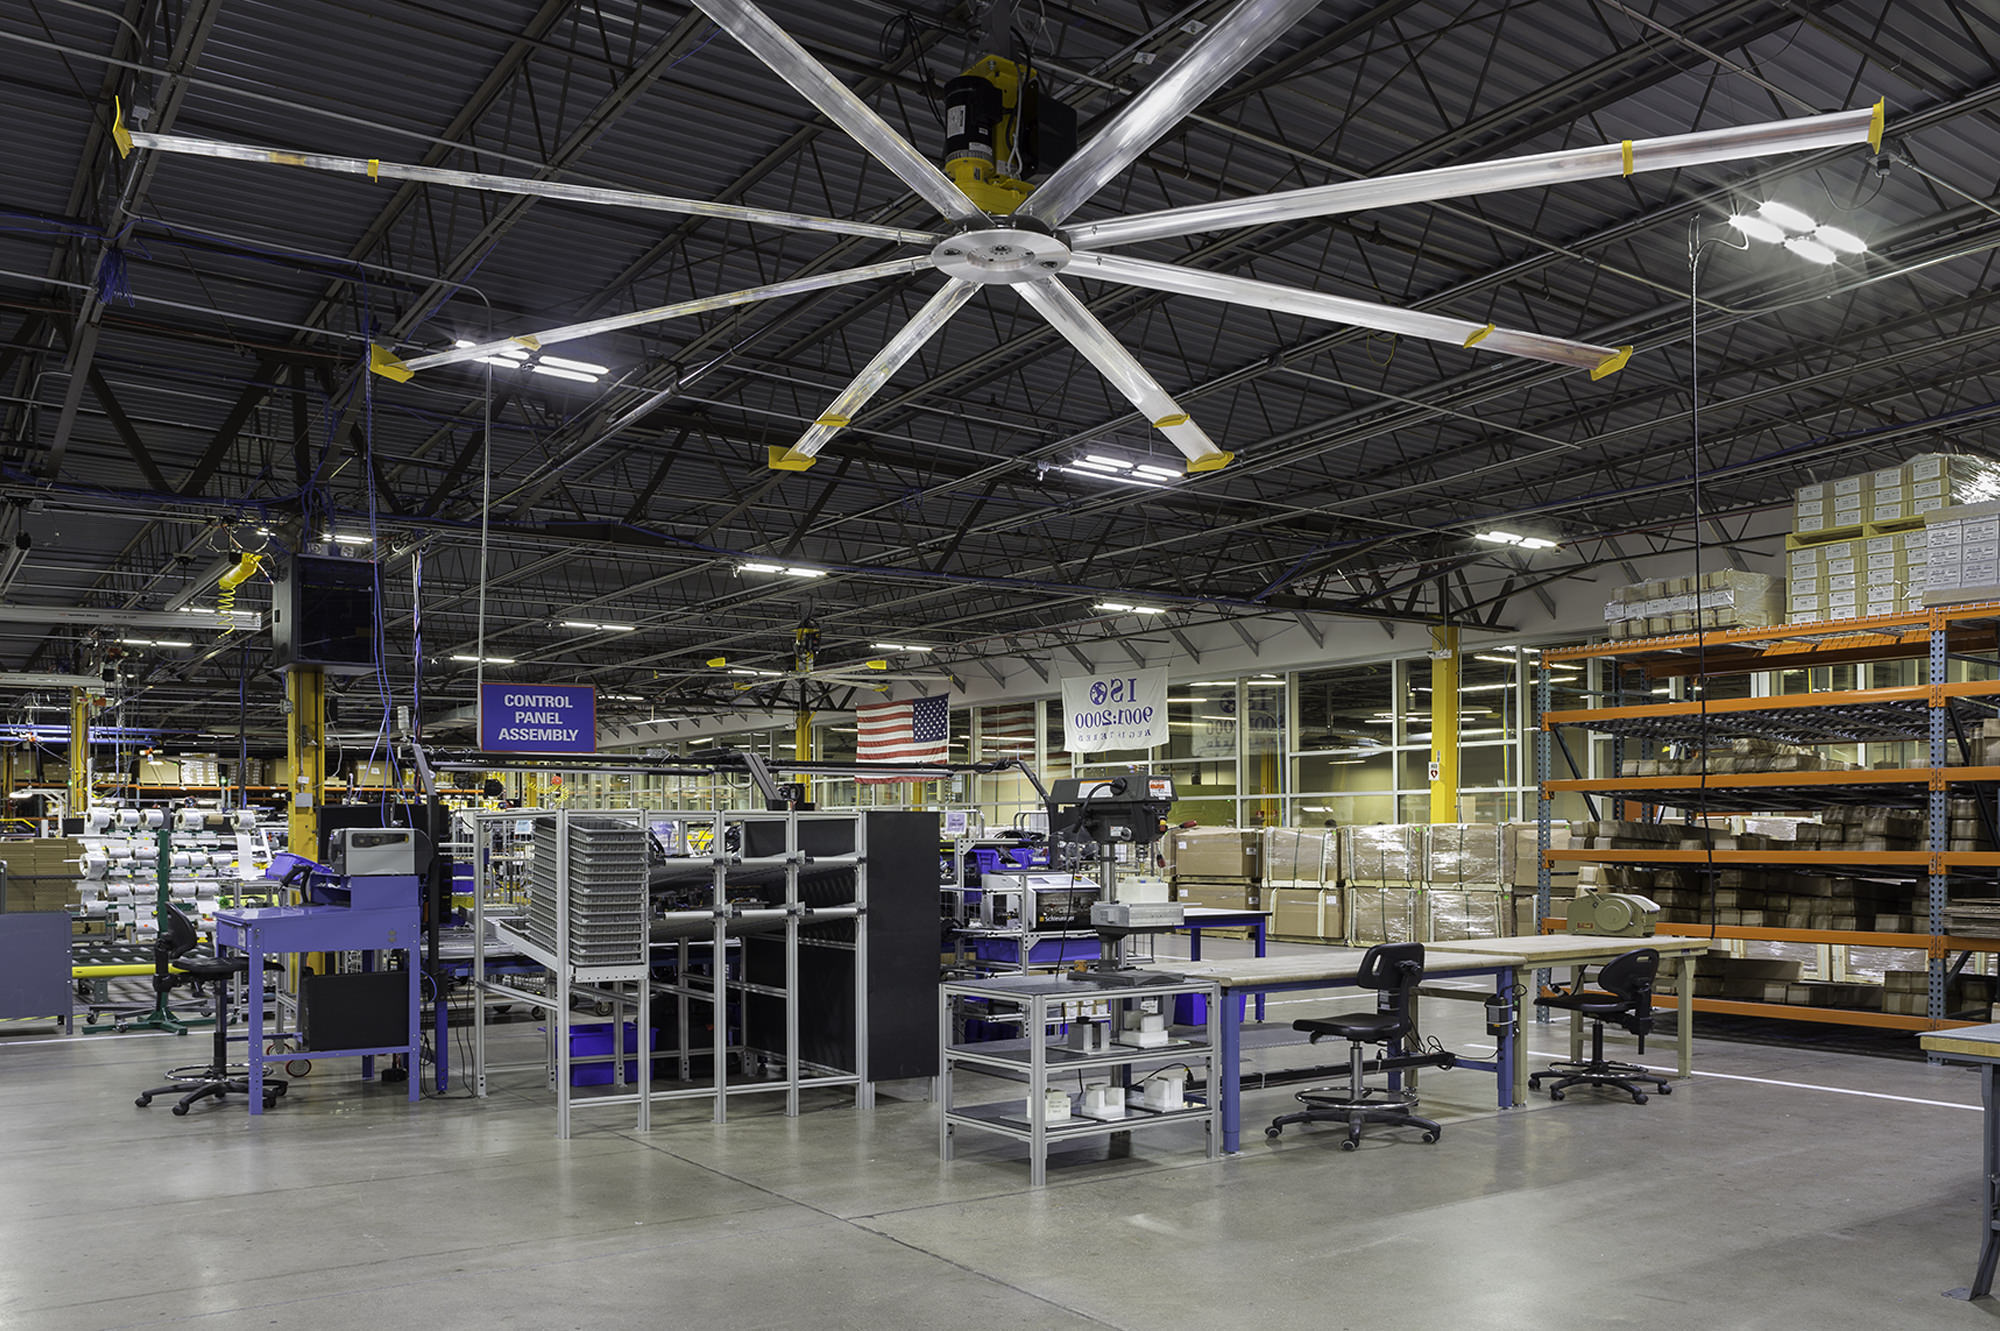 Industrial HVLS Ceiling Fans For Manufacturing Facilities From Big Ass Fans